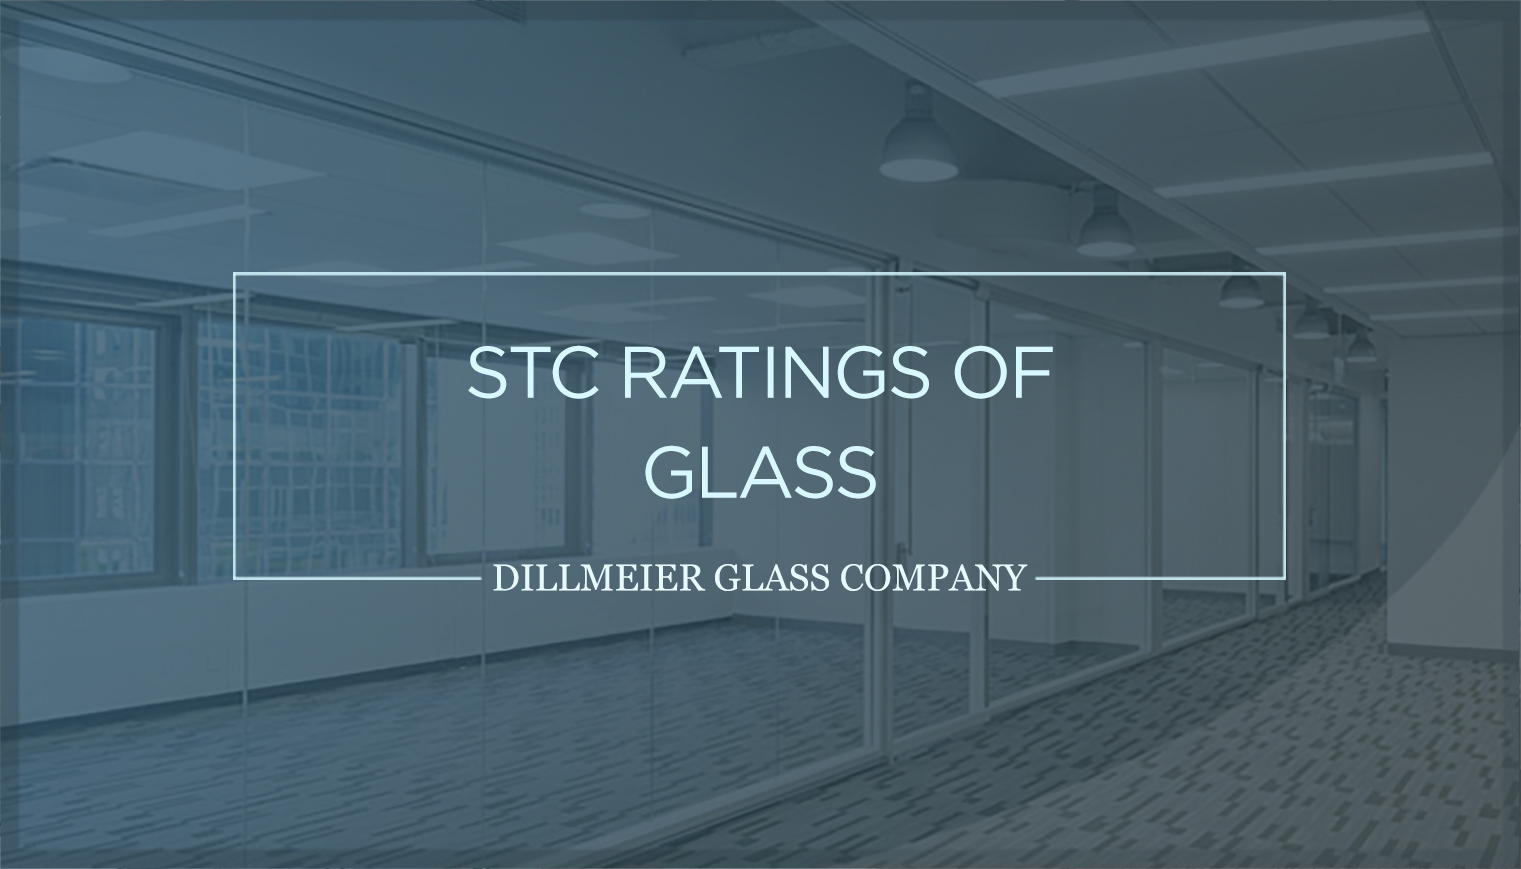 STC Ratings of Glass